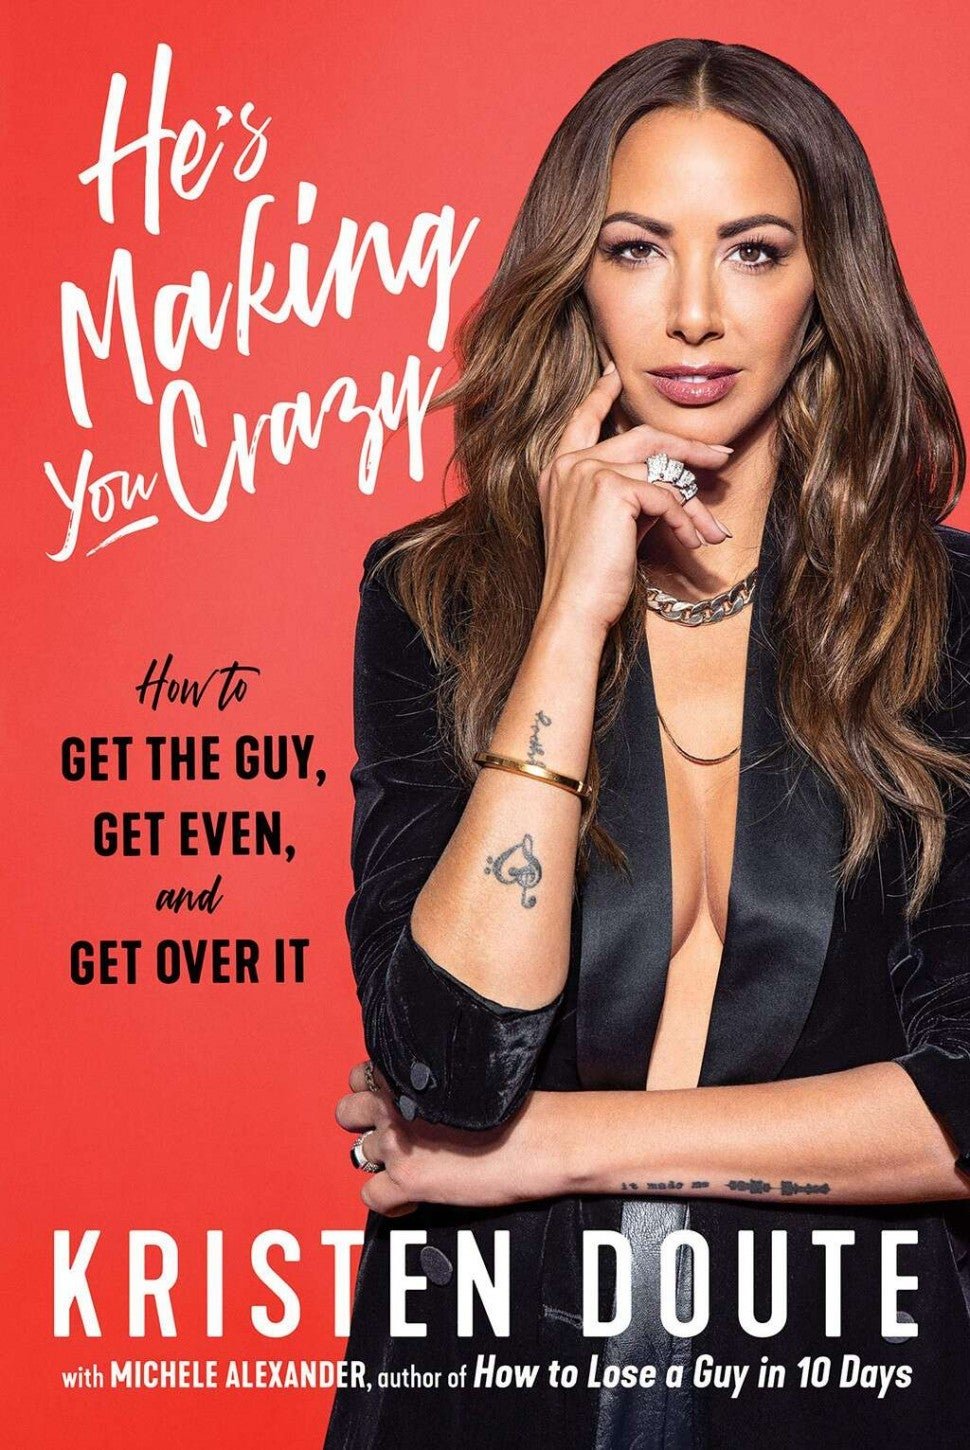 The cover of Kristen Doute's new book, 'He's Making You Crazy.'